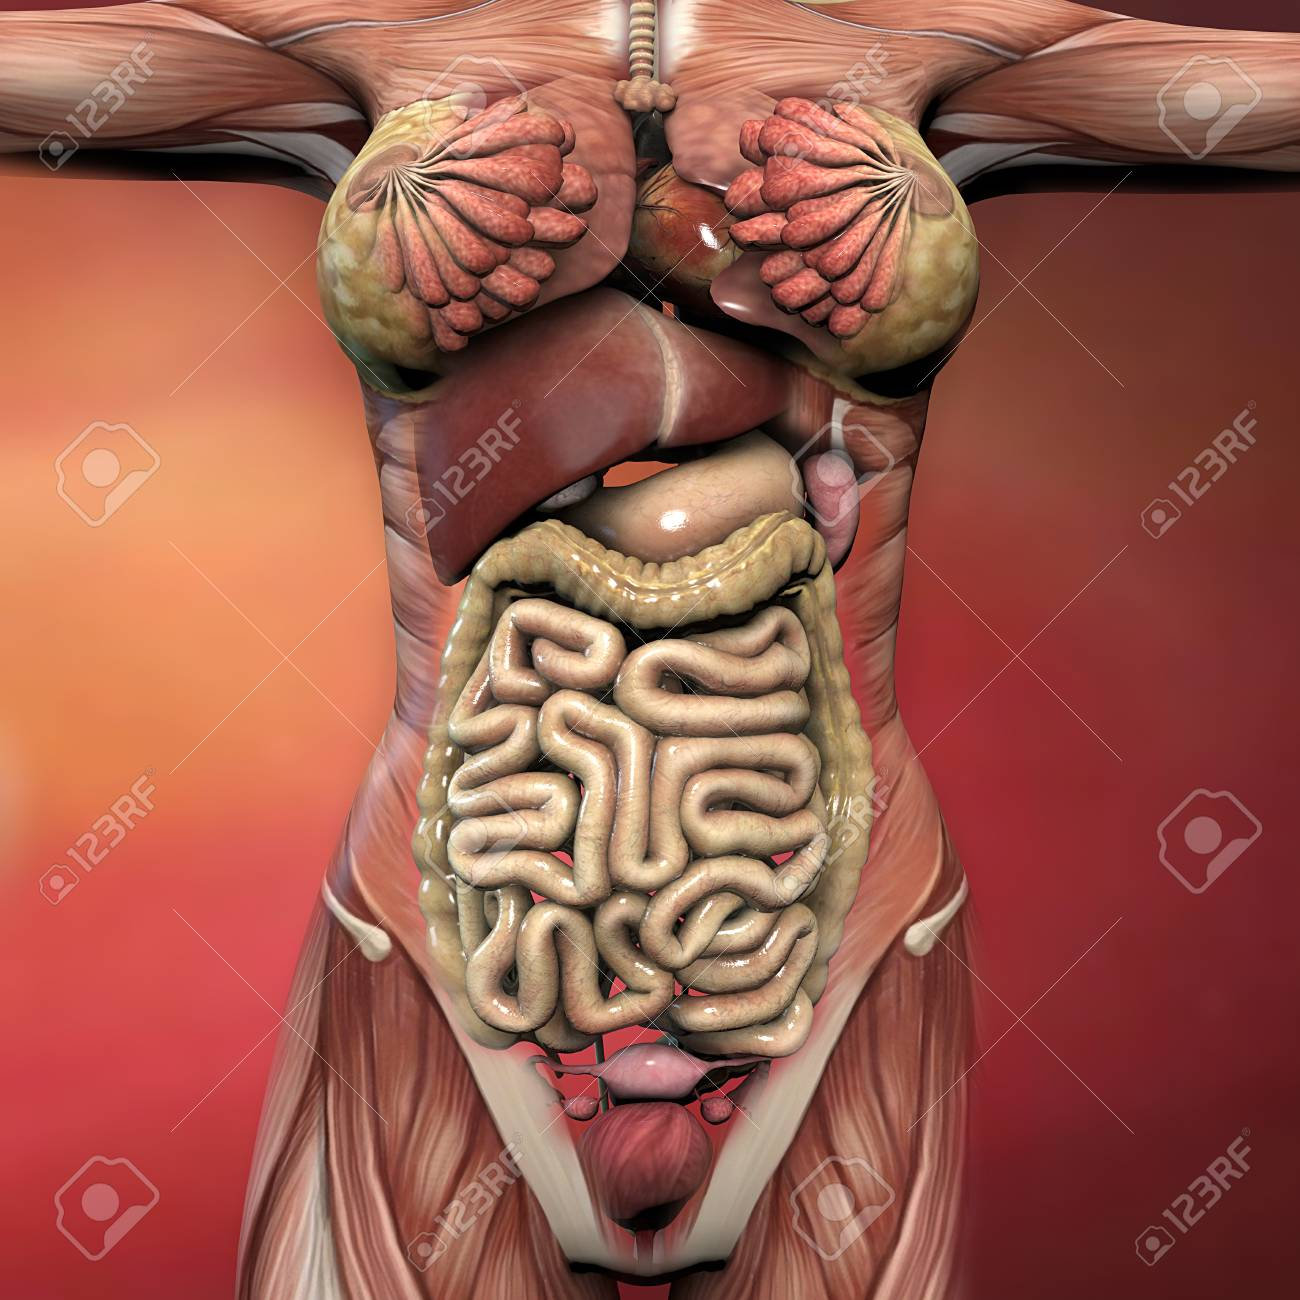 Female Human Body Anatomy Muscles And Organs Stock Photo Picture